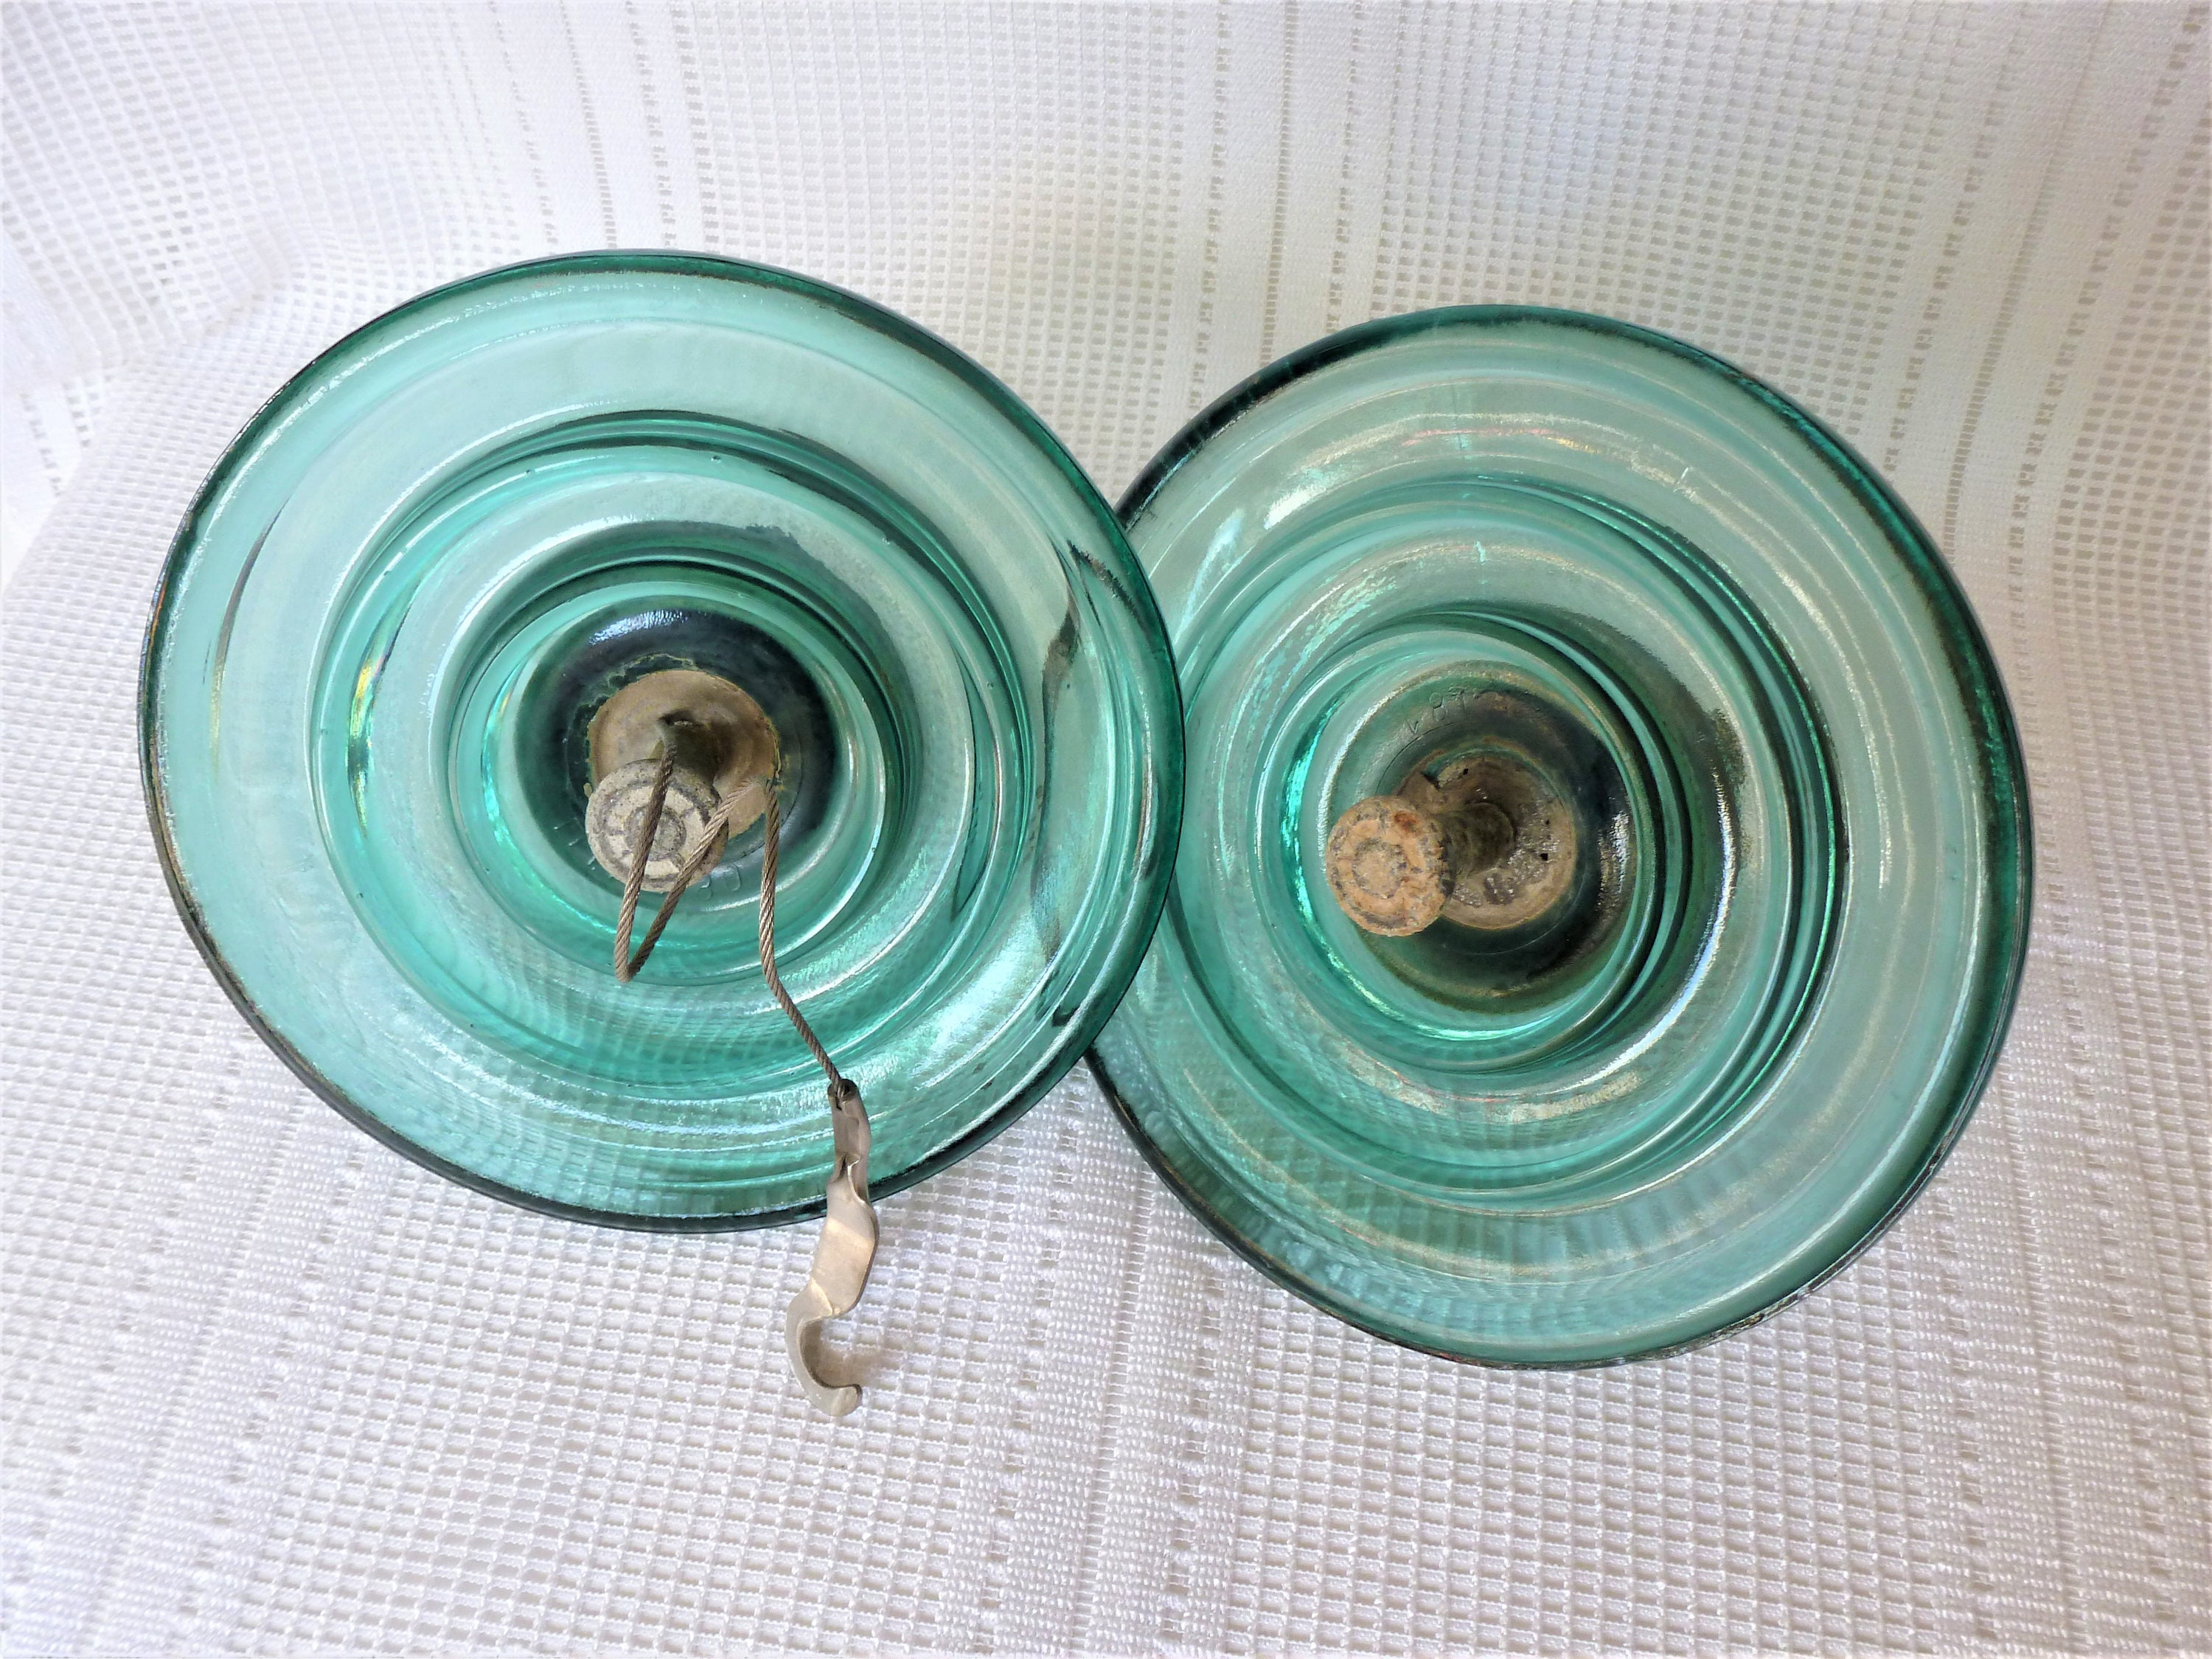 Electrical Insulator / Glass Insulator / Industrial Decor / Vintage  Insulator / Lamp Accessories / Lamp Supplies / For him / French decor